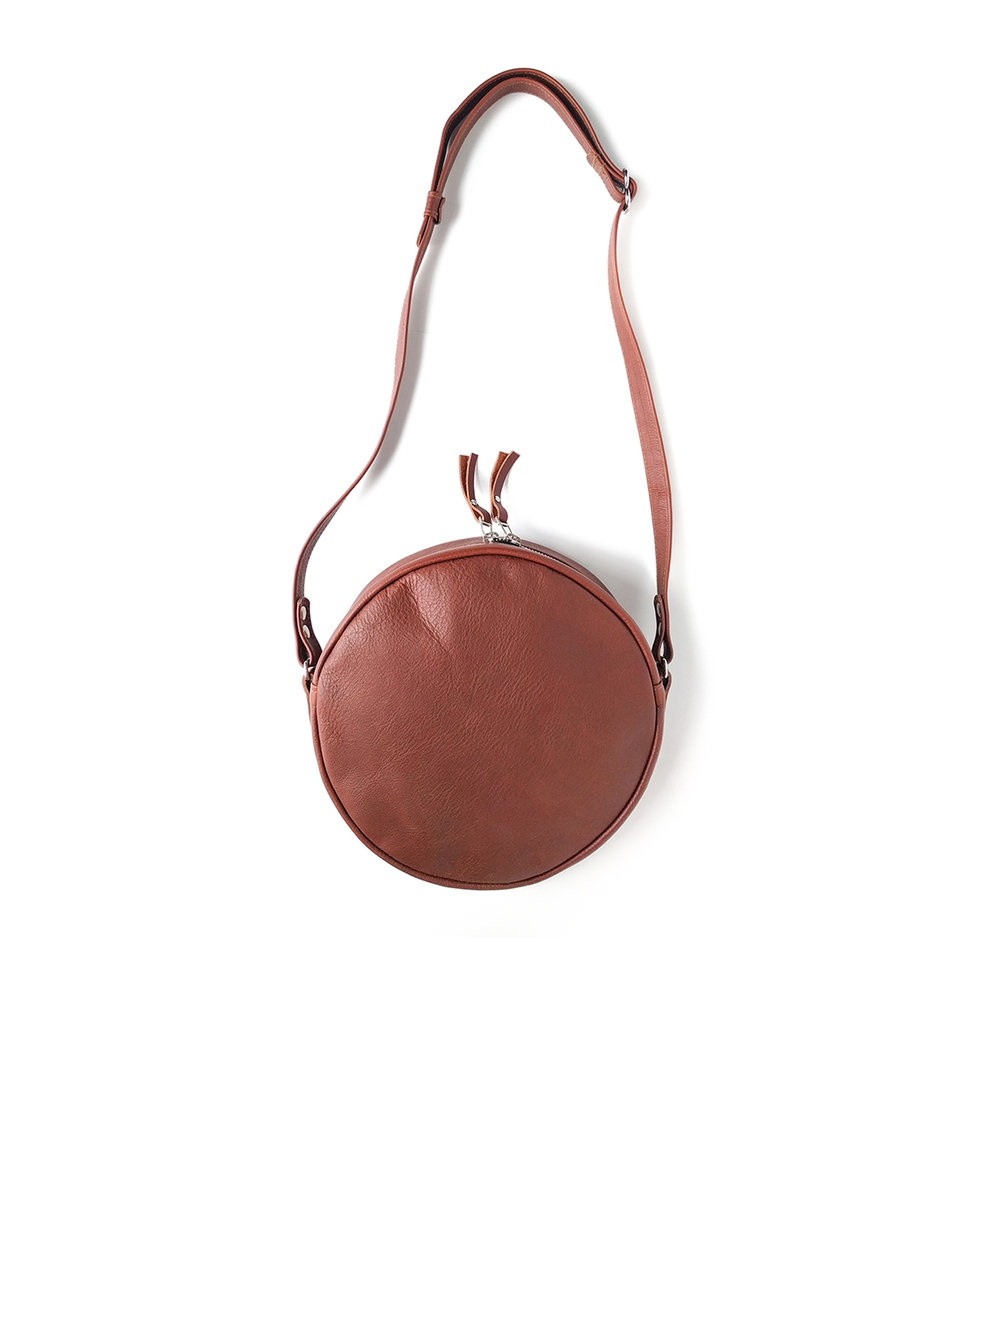 Orbit handbag - more colors available140.00$